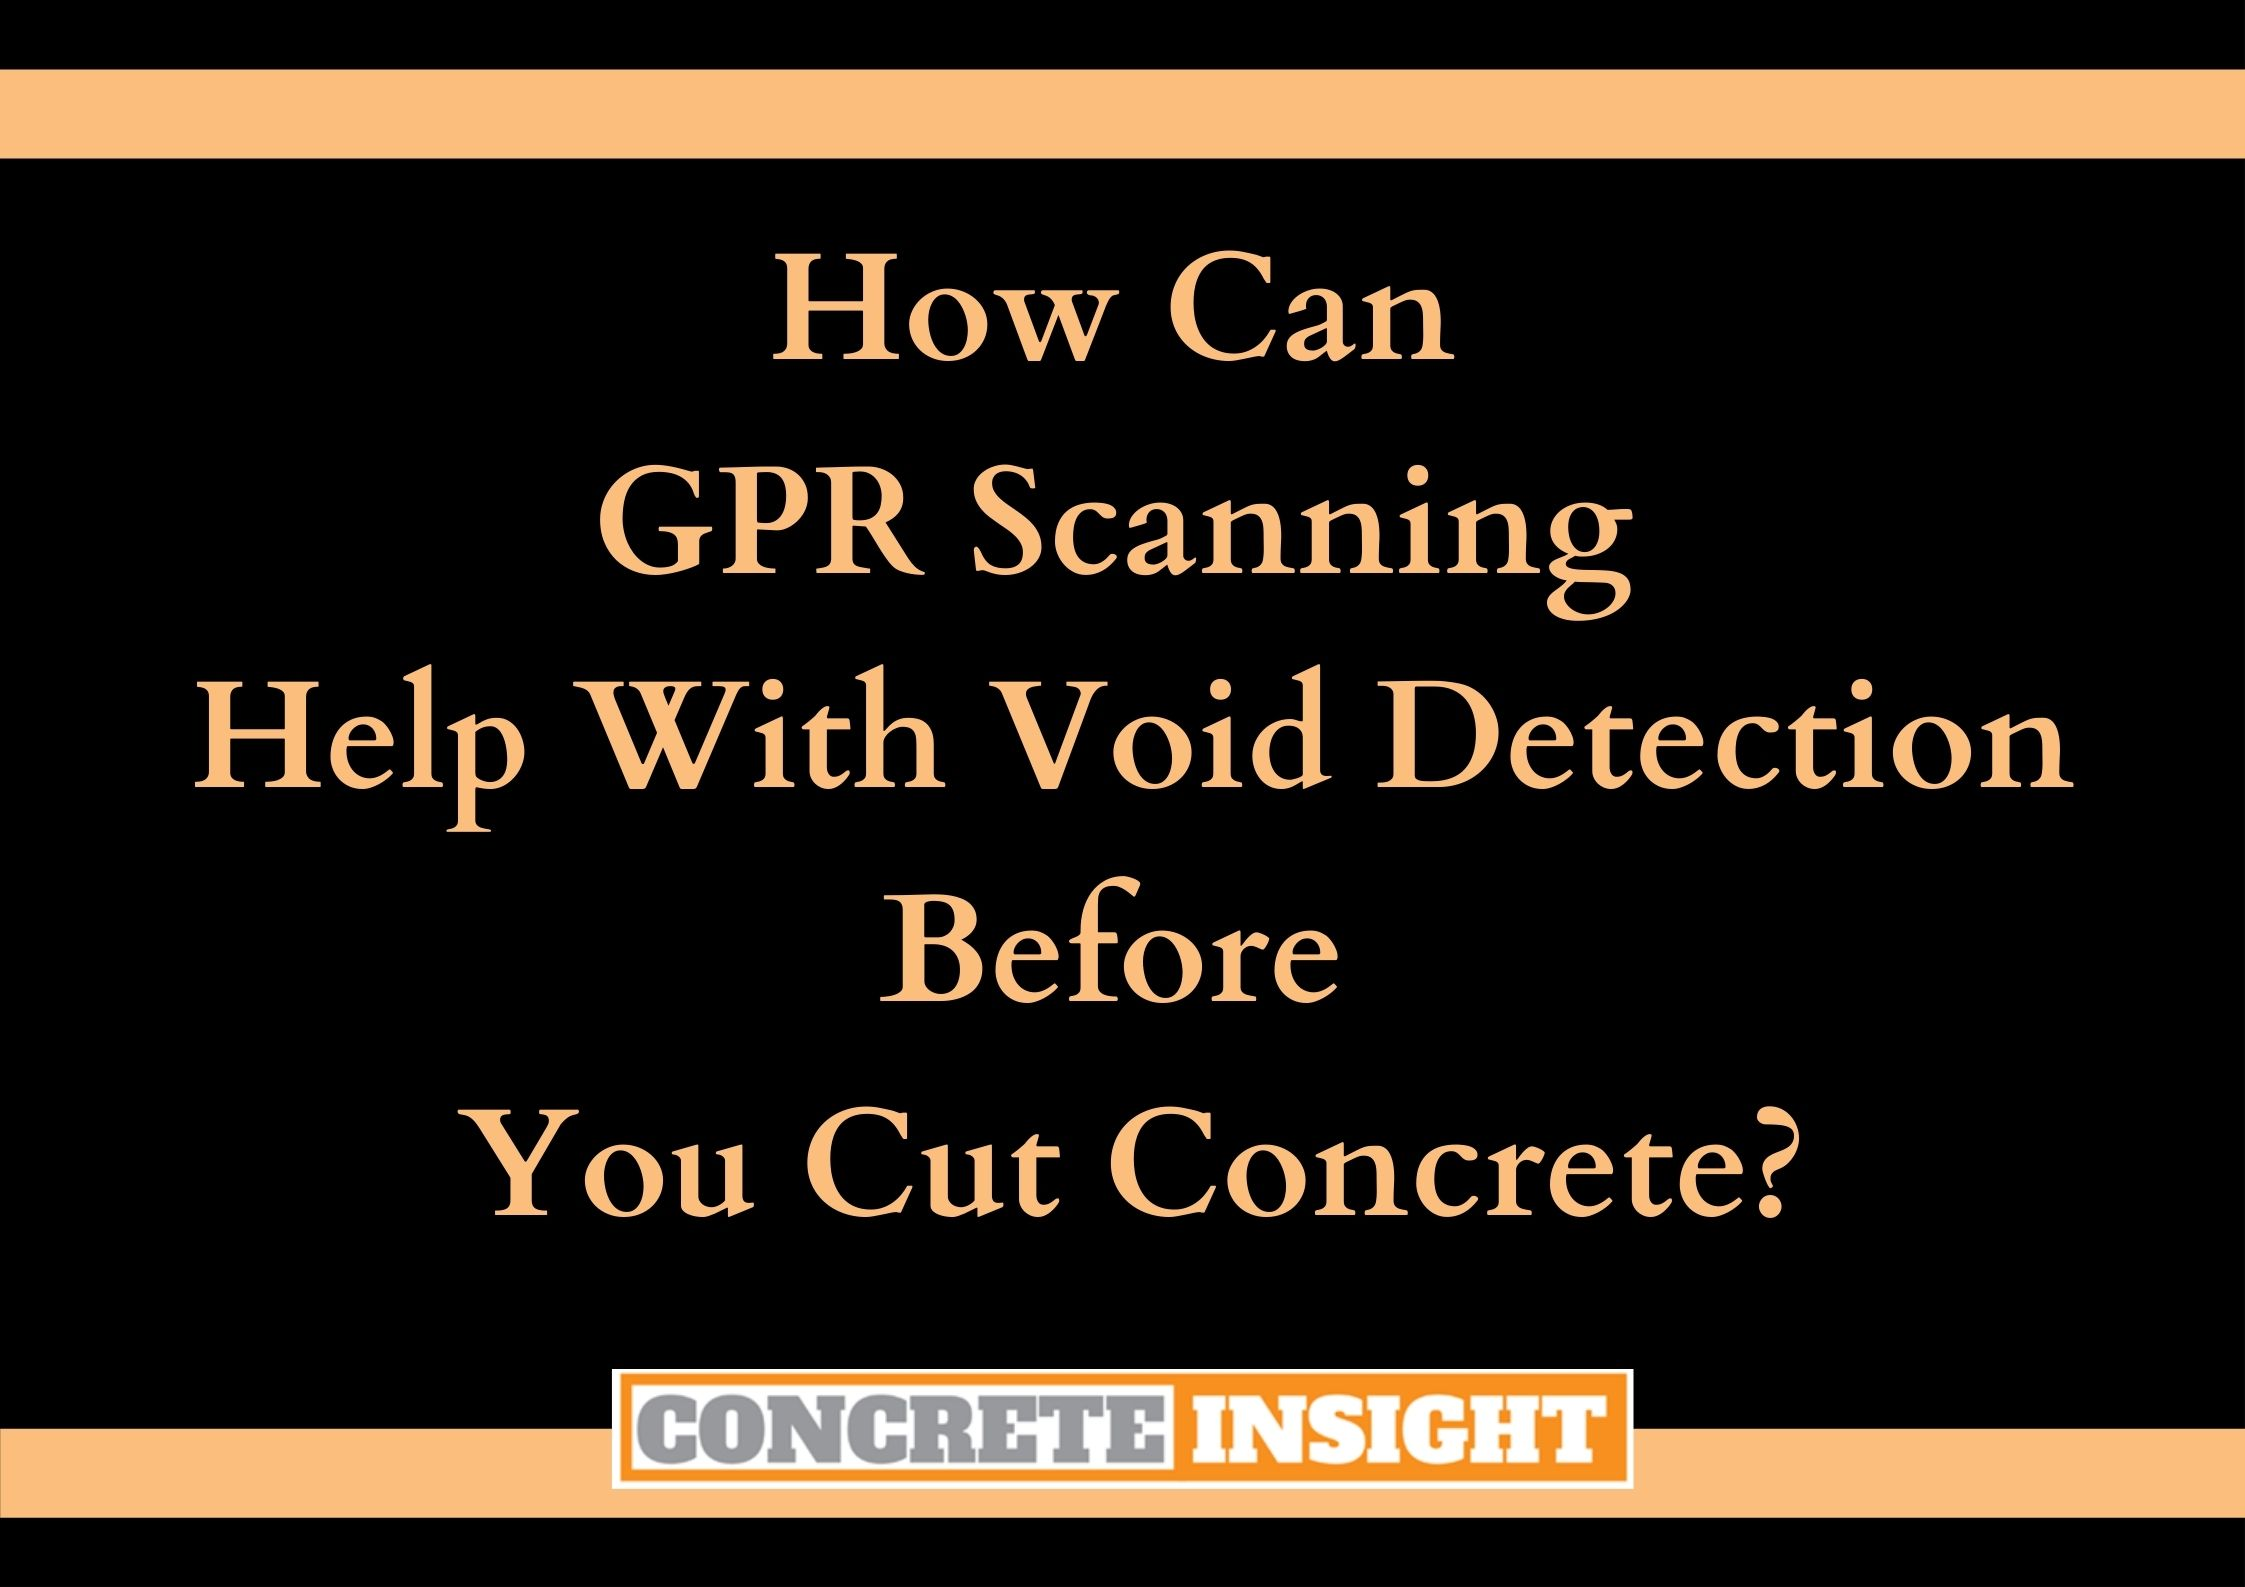 How GPR Scanning Can Help with Void Detection